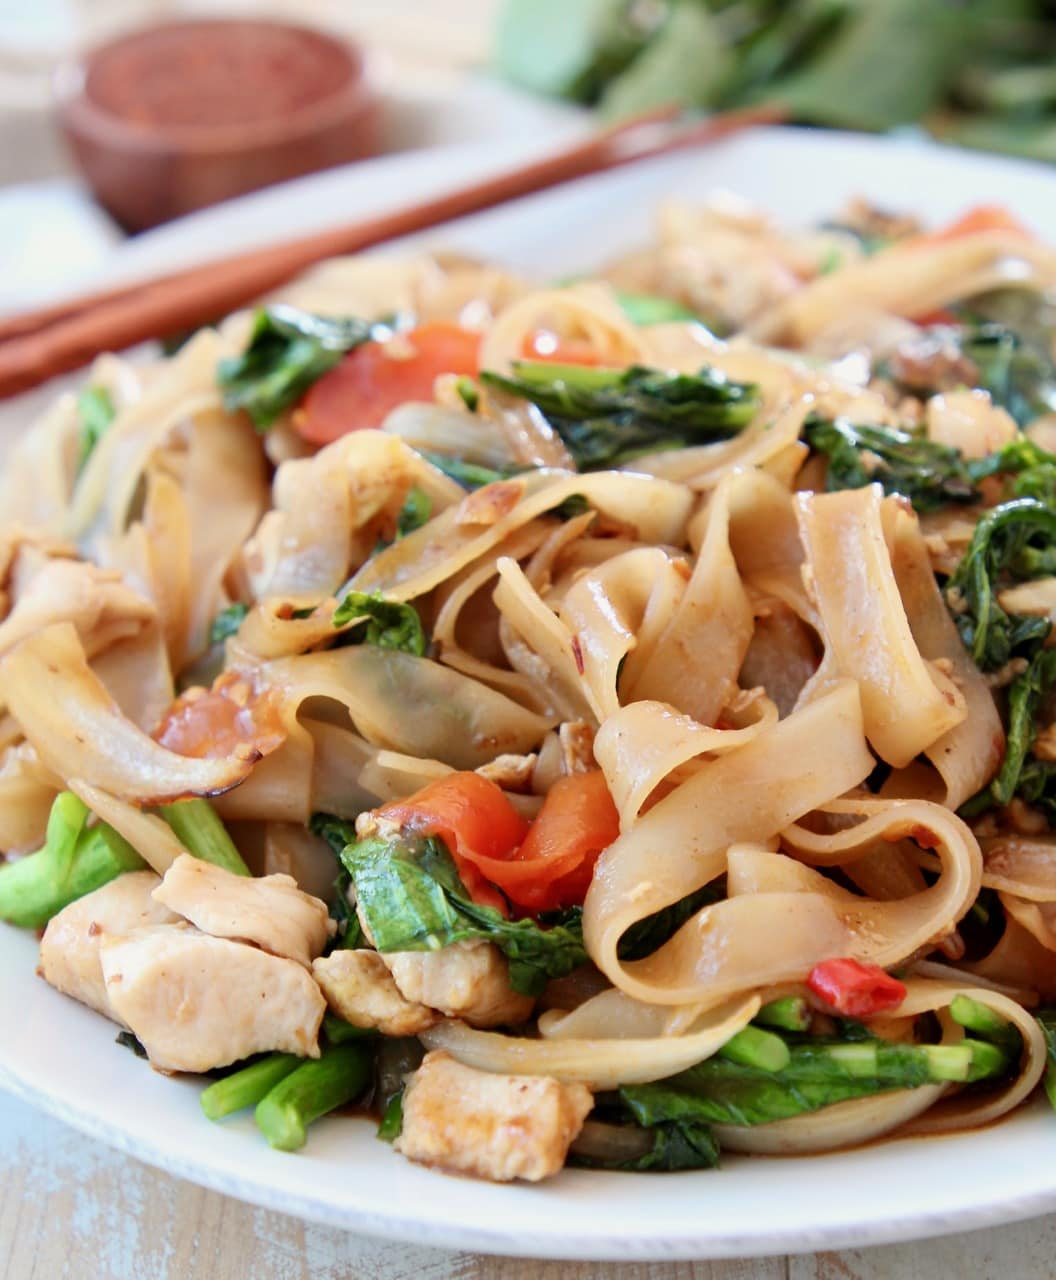 Thai wide noodles stir fried with Chinese broccoli on white plate